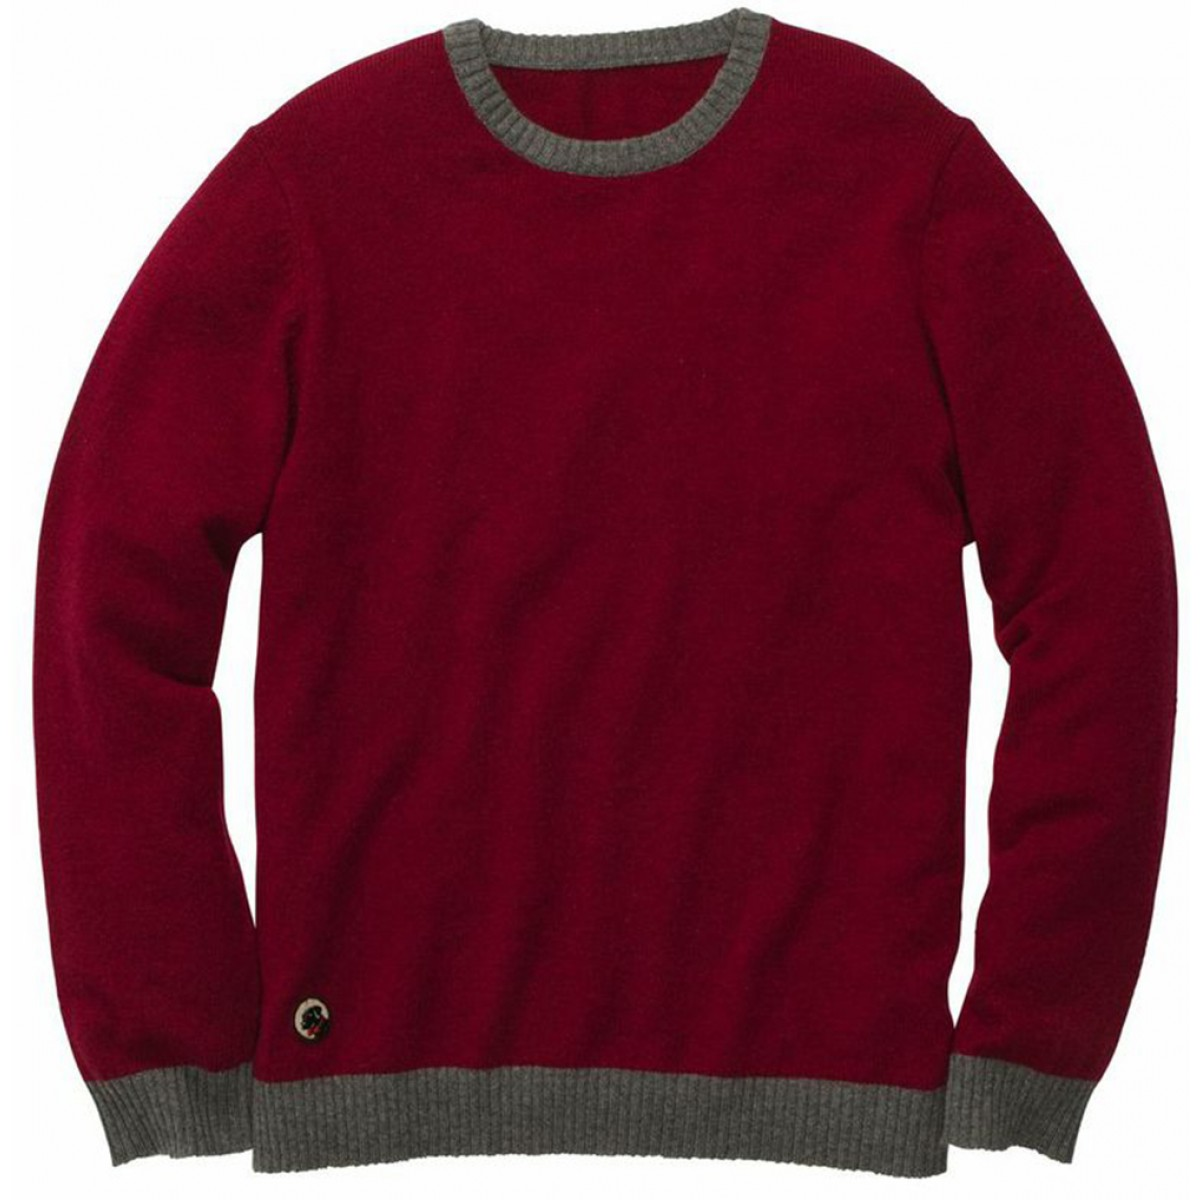 Let-Her Sweater - Crimson